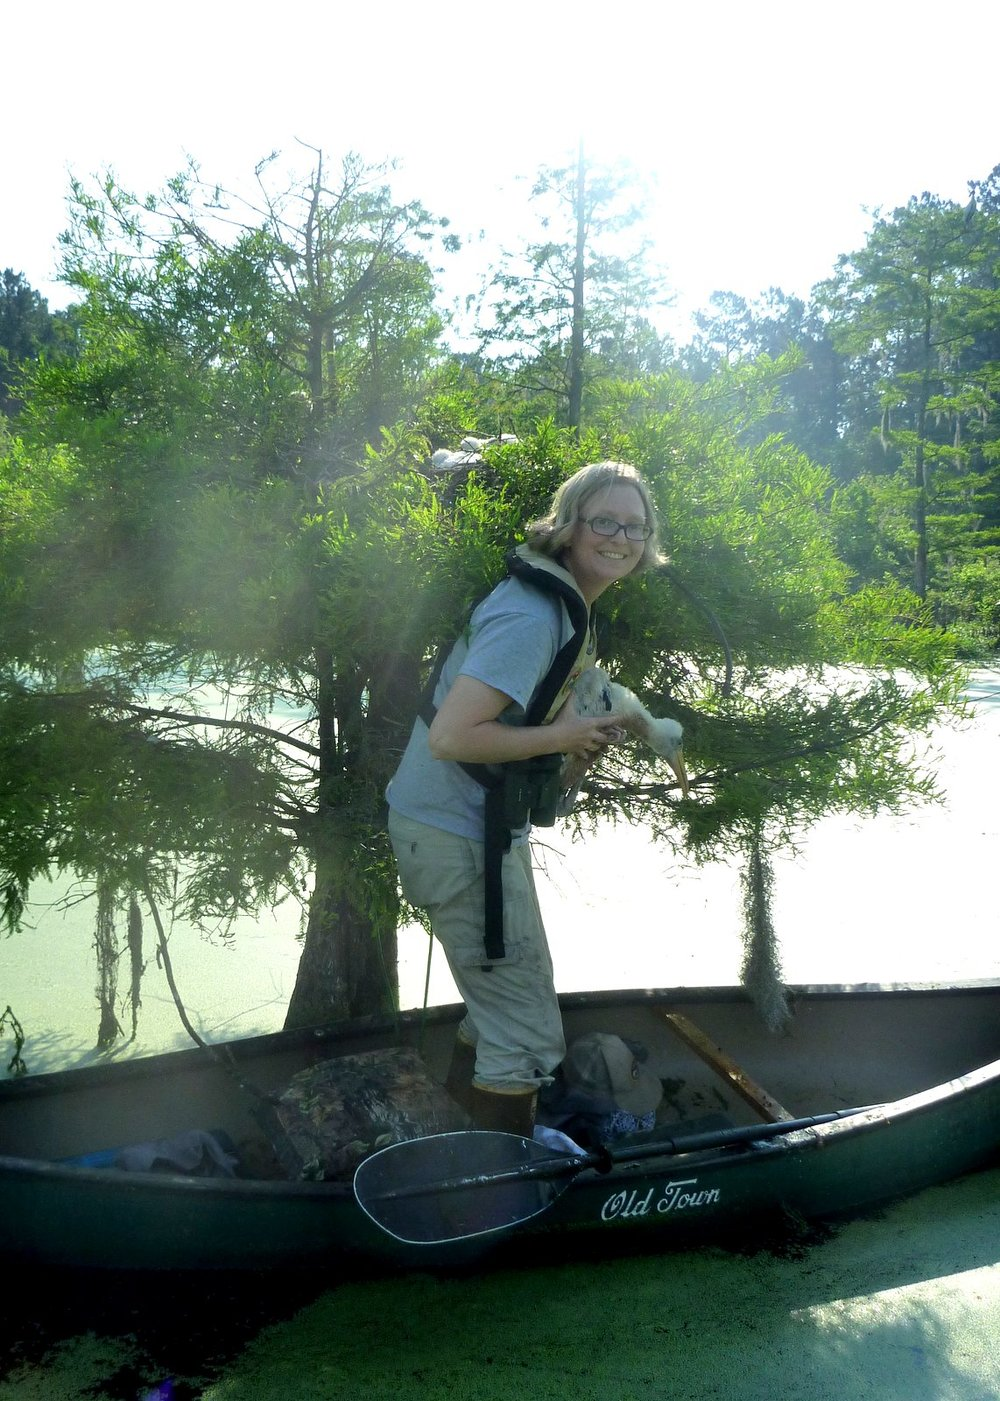 SCDNR biologist Christy Hand gently returns a wood stork chick to its nest after measuring and banding it. (Photo: Alix Pedraza/SCDNR)